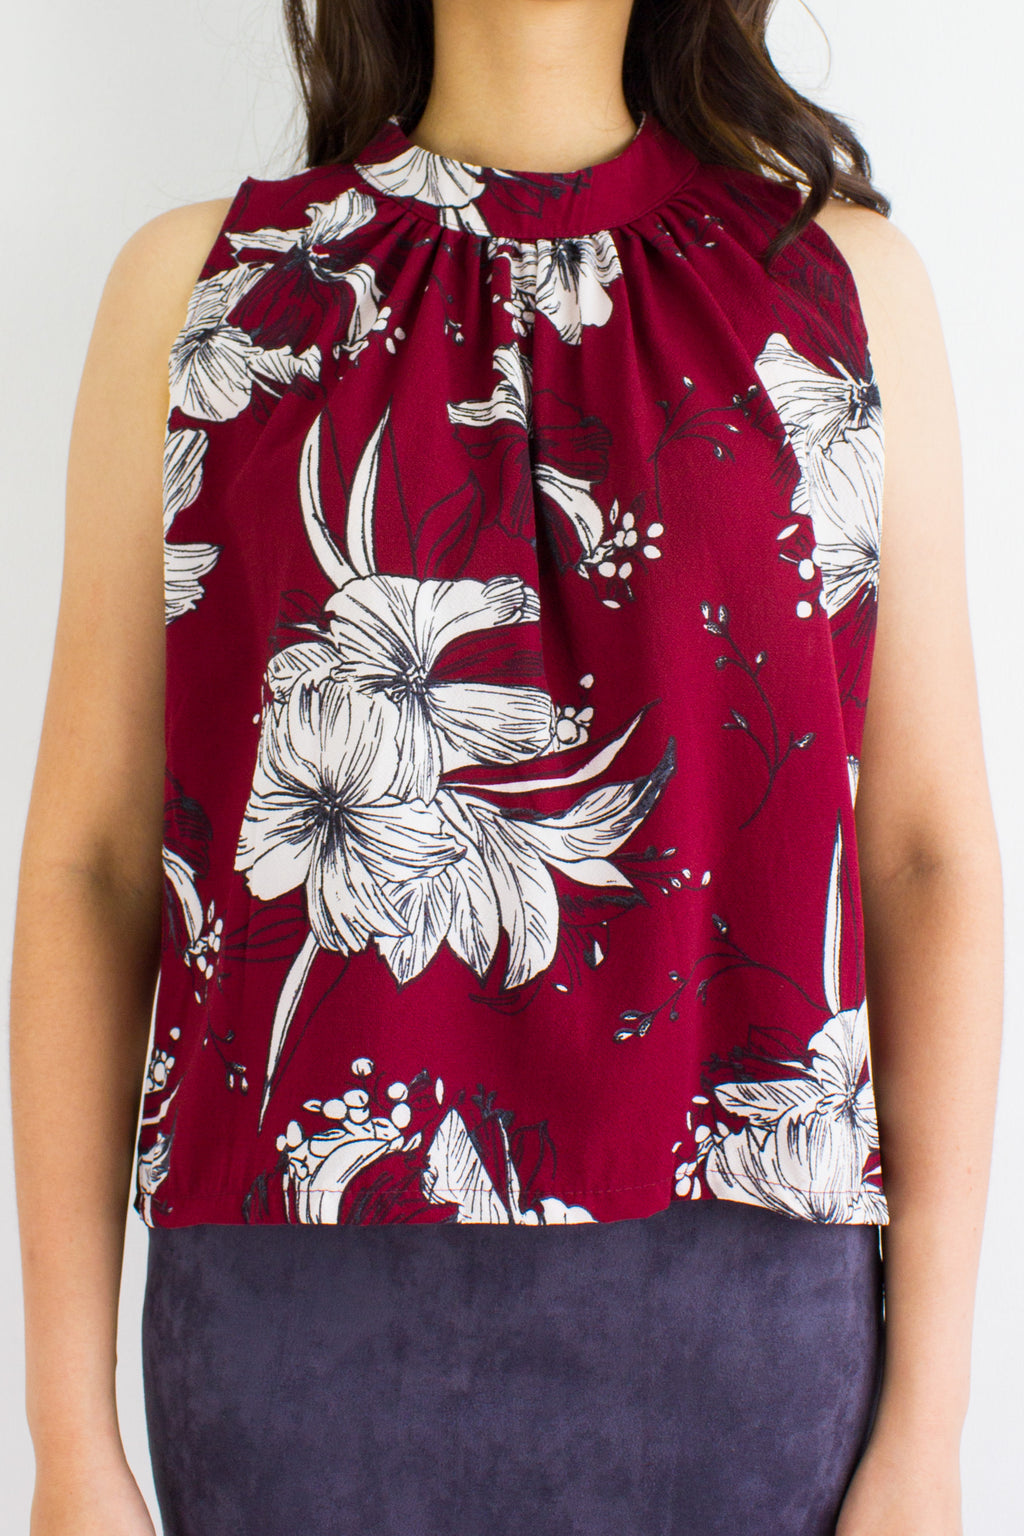 All Grown Up Floral Top in Maroon - TOPS - Peep Boutique